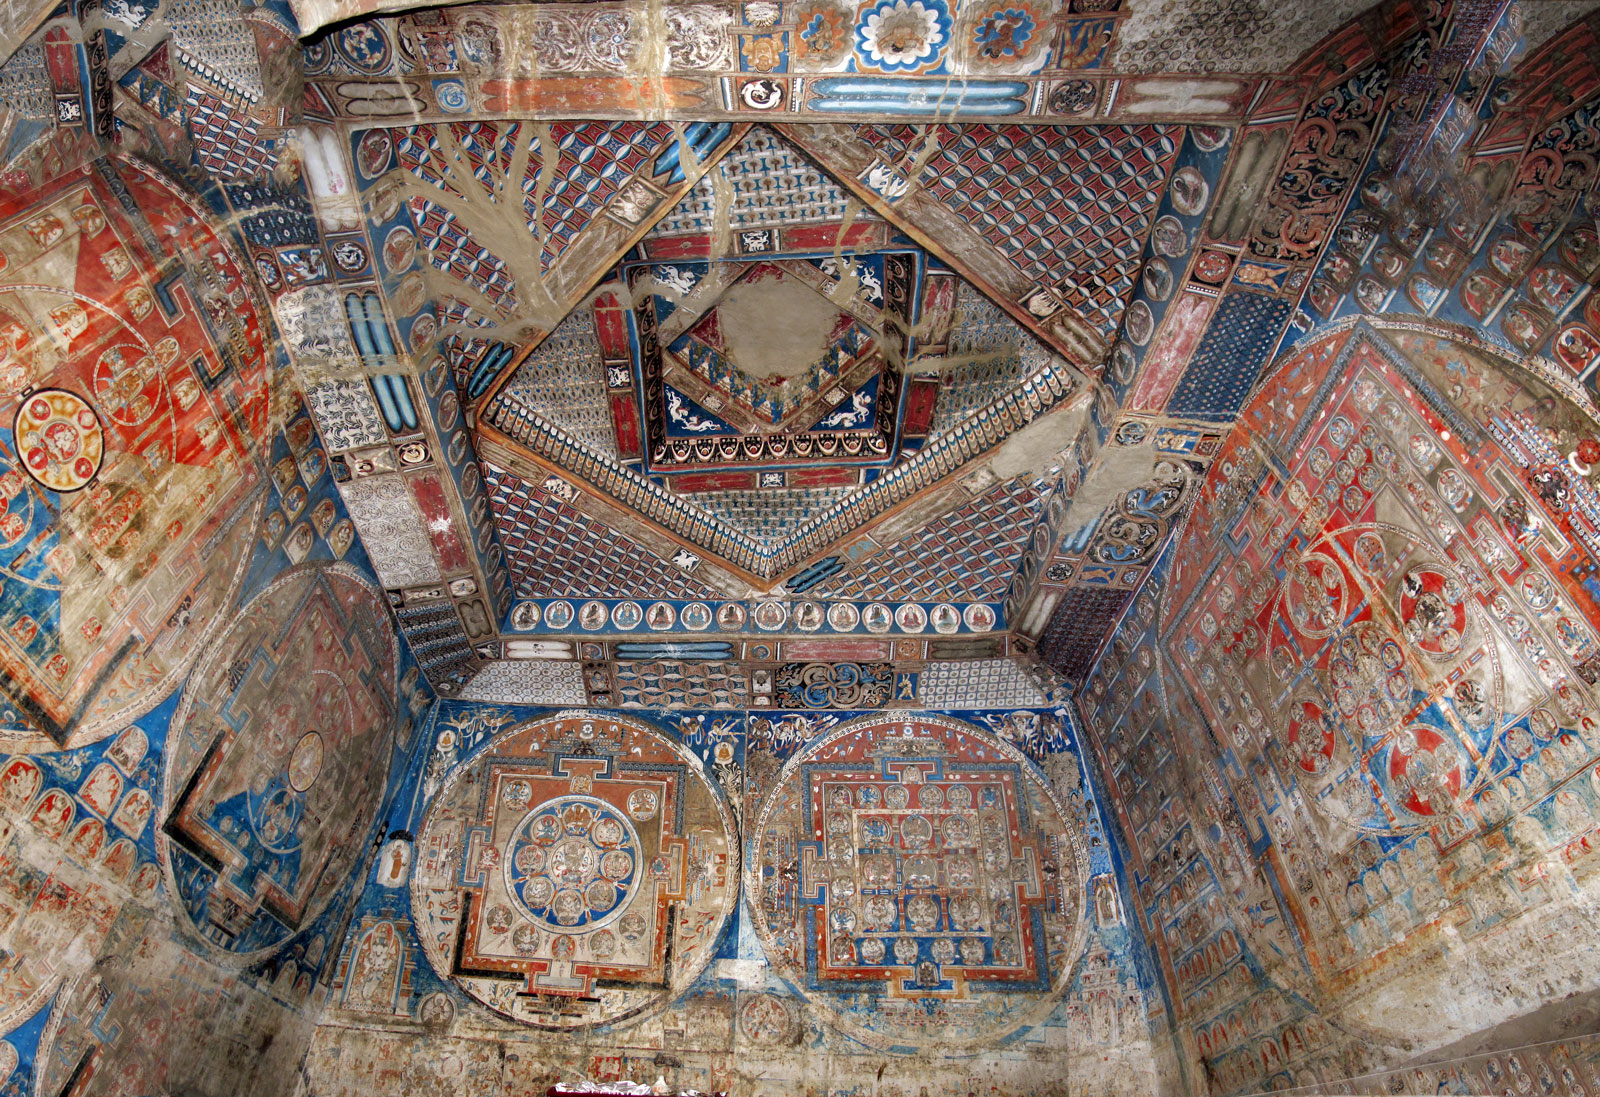 Temple room in Dungkar Cave 1, one of four caves that were residences of the Guge dynasty beginning in the twelfth century